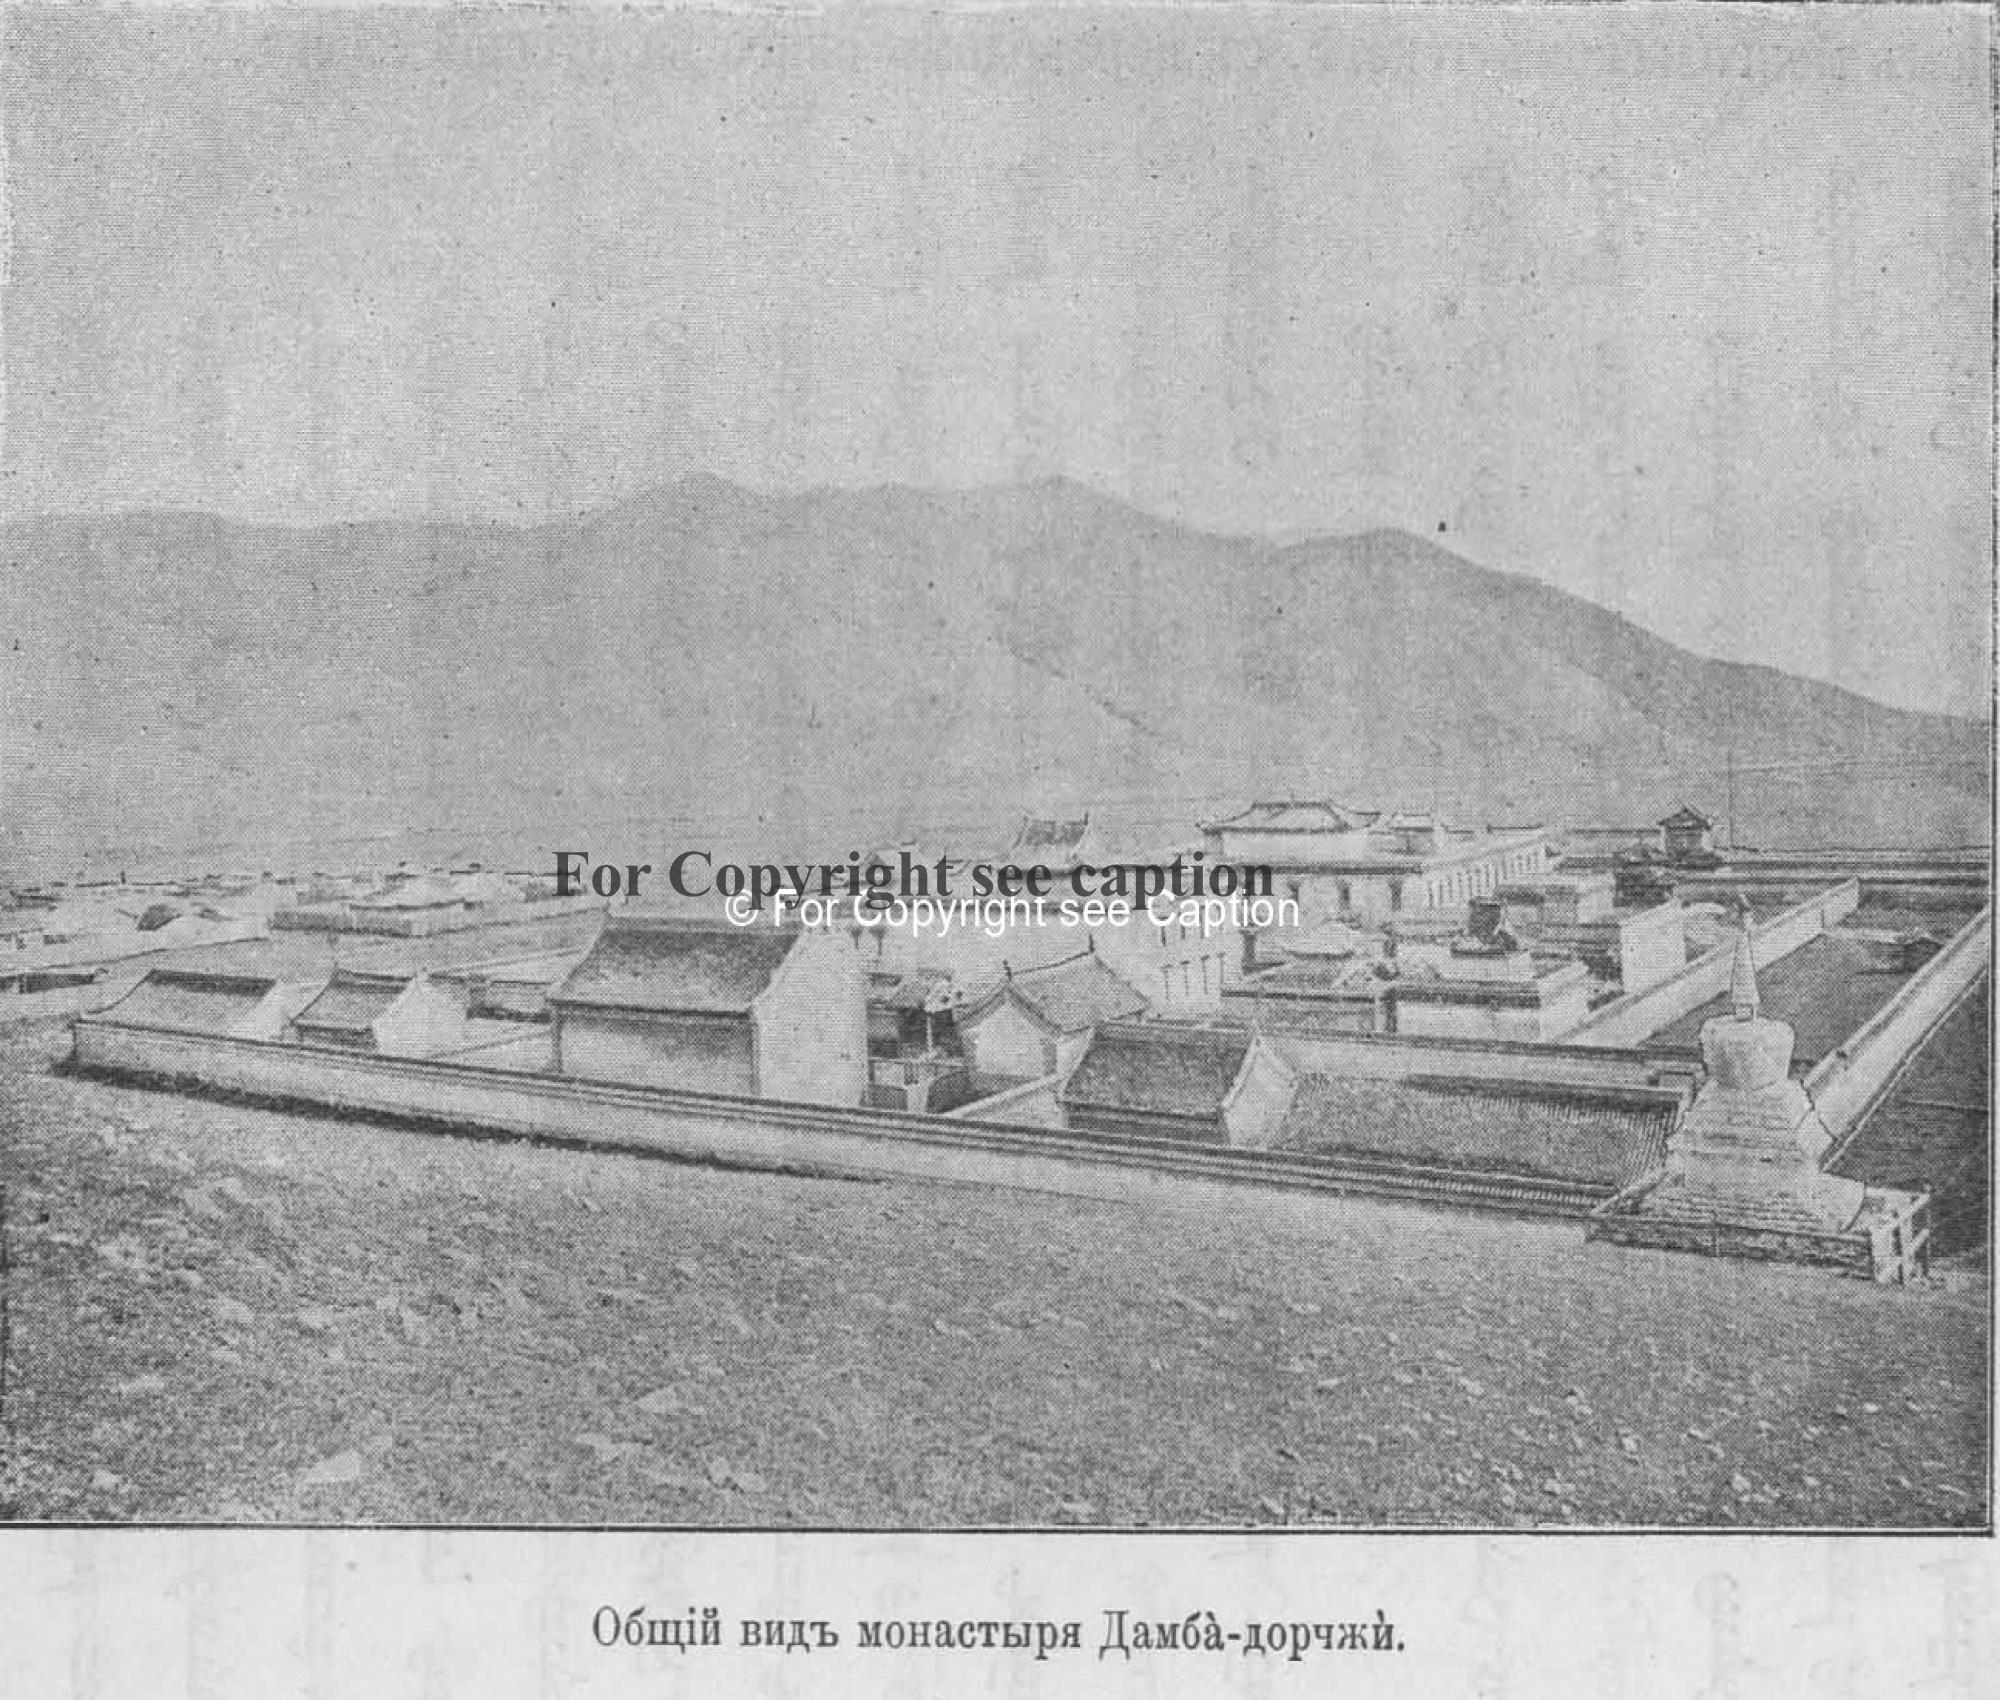 General view from the North. Pozdneev, A. M., Mongolija i Mongoly. T. 1. Sankt-Peterburg 1896 (photo